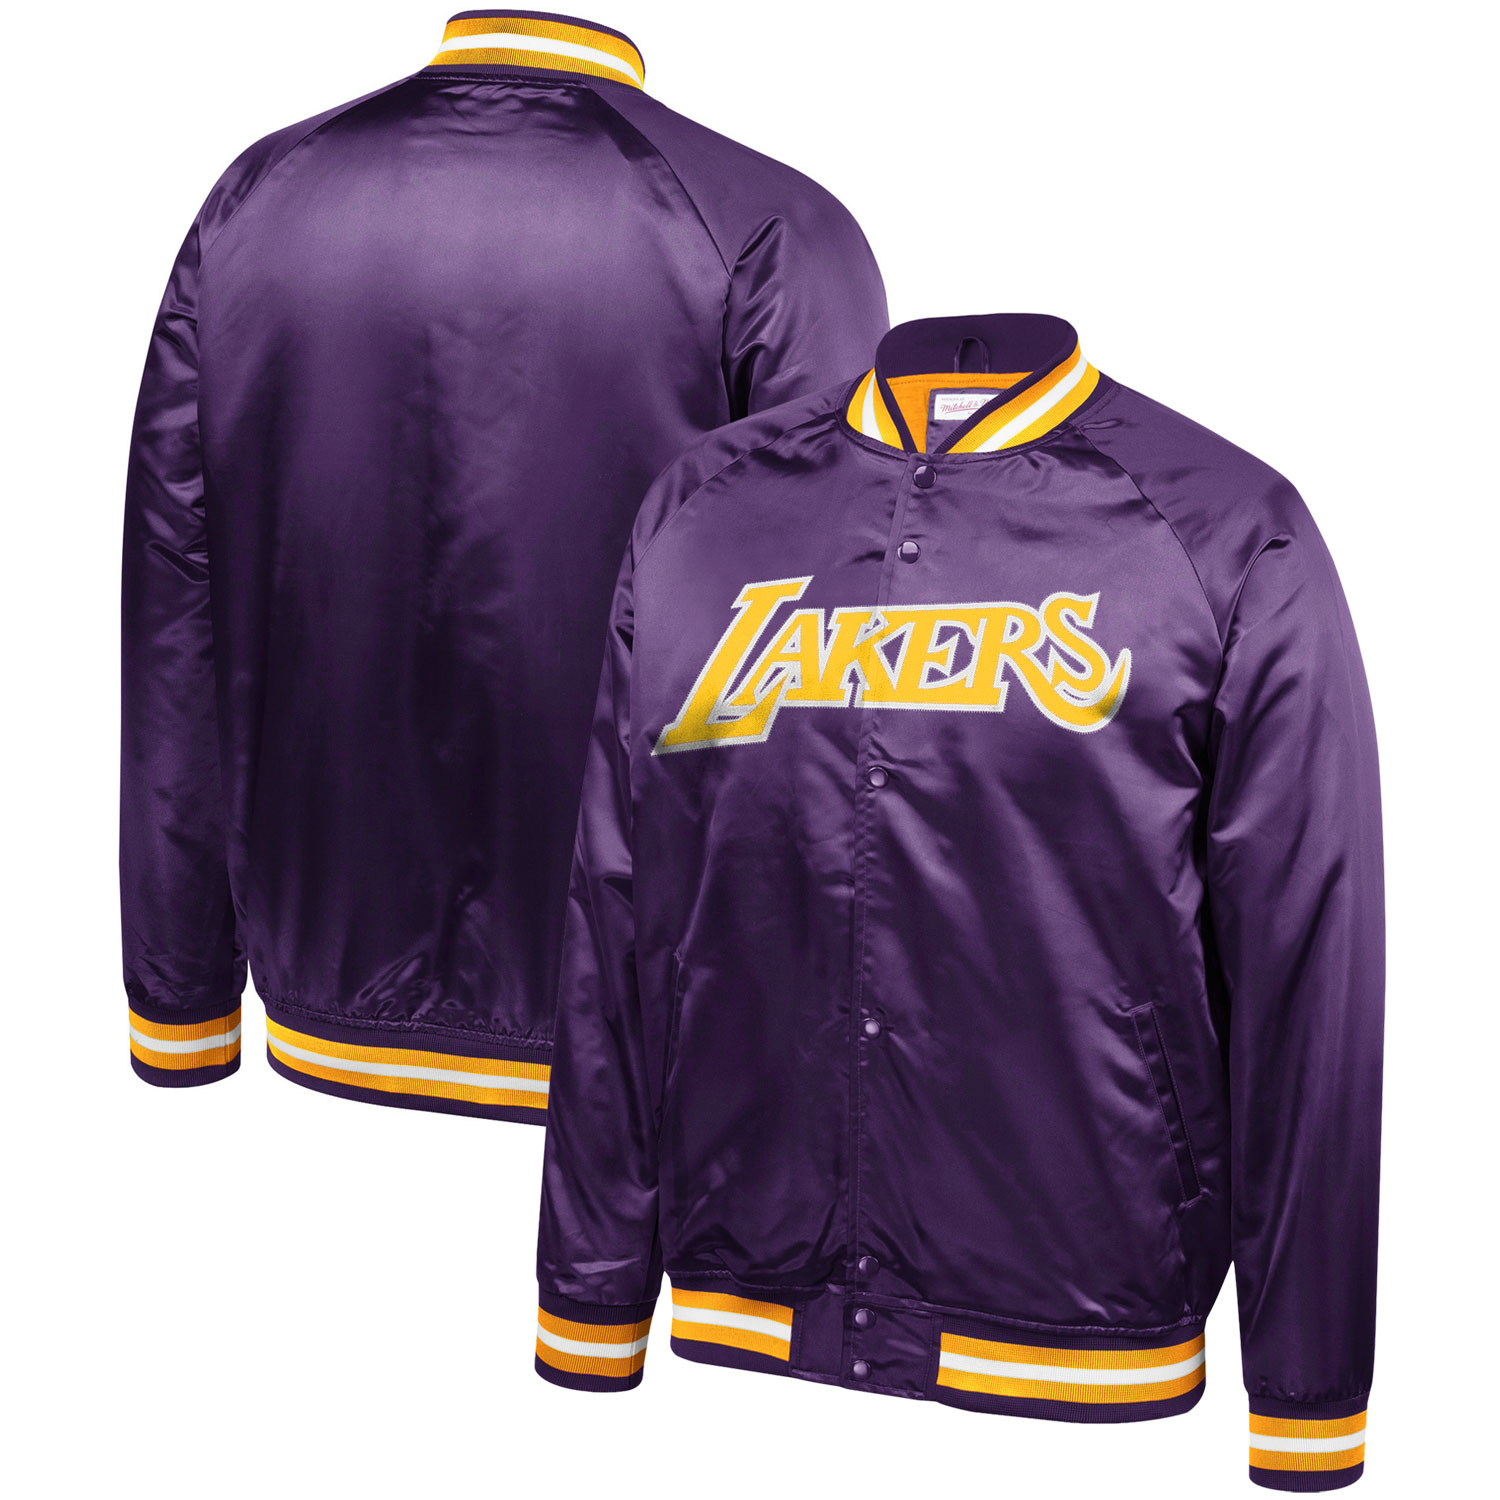 Los Angeles Lakers Mitchell & Ness Hardwood Classics Throwback Wordmark Satin Jacket - Purple